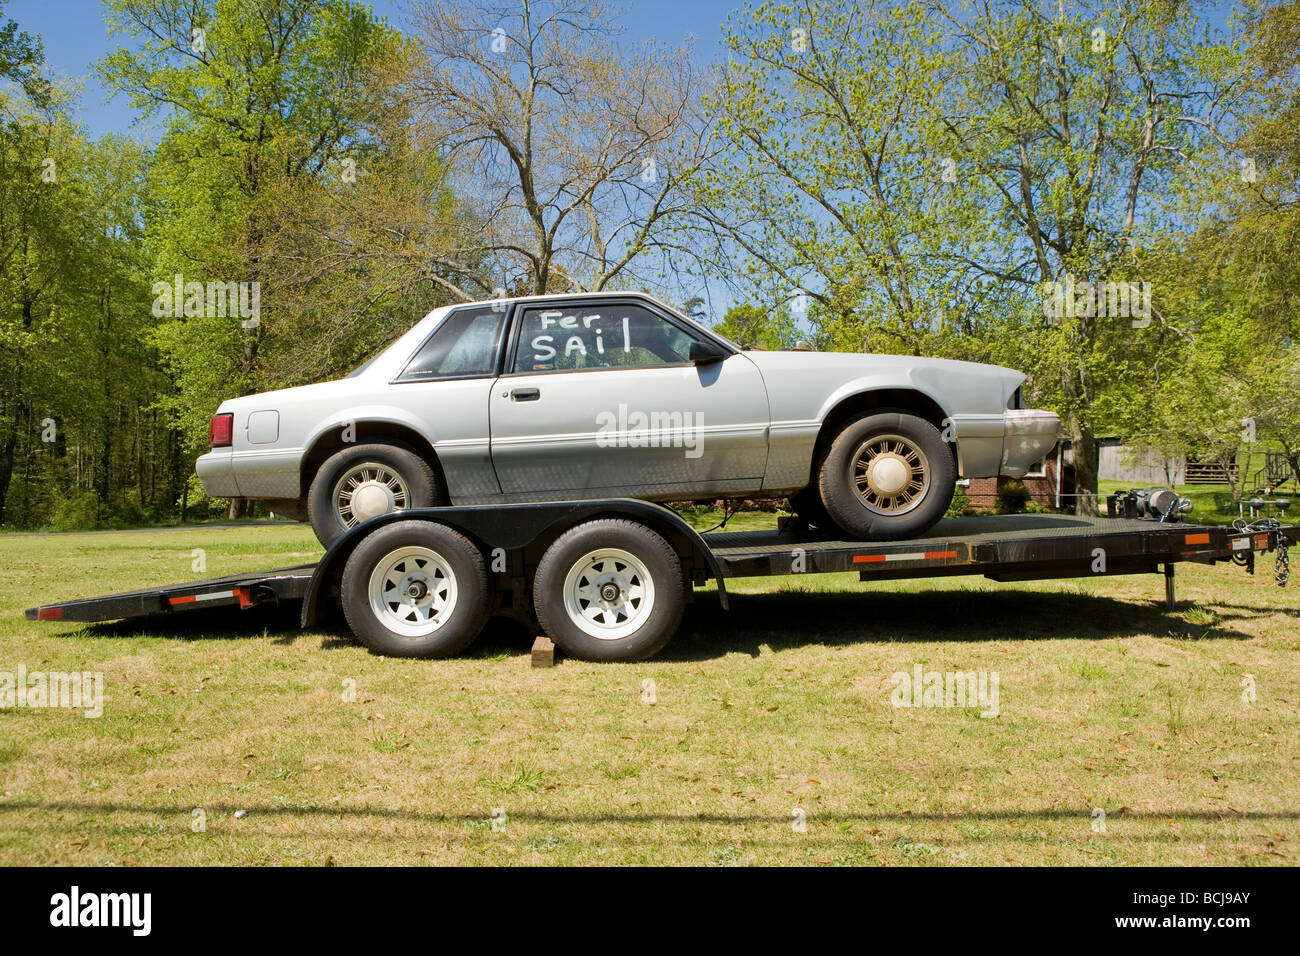 Car for sale on transport trailer carrier parked on lawn with trees ...